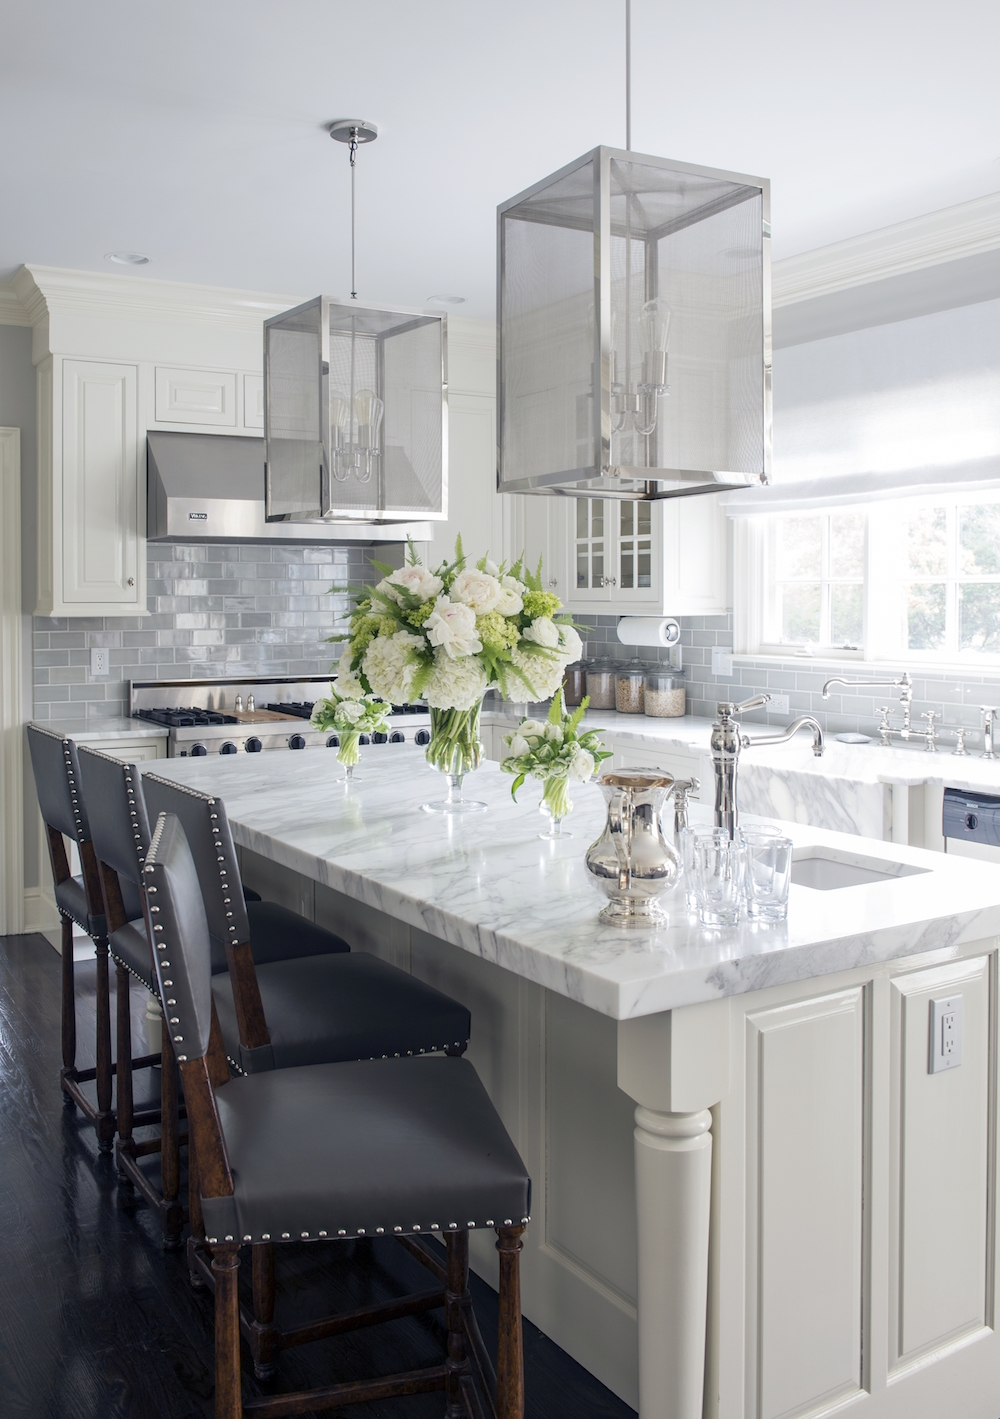 White Marble Kitchen with Grey Tiled Backsplash